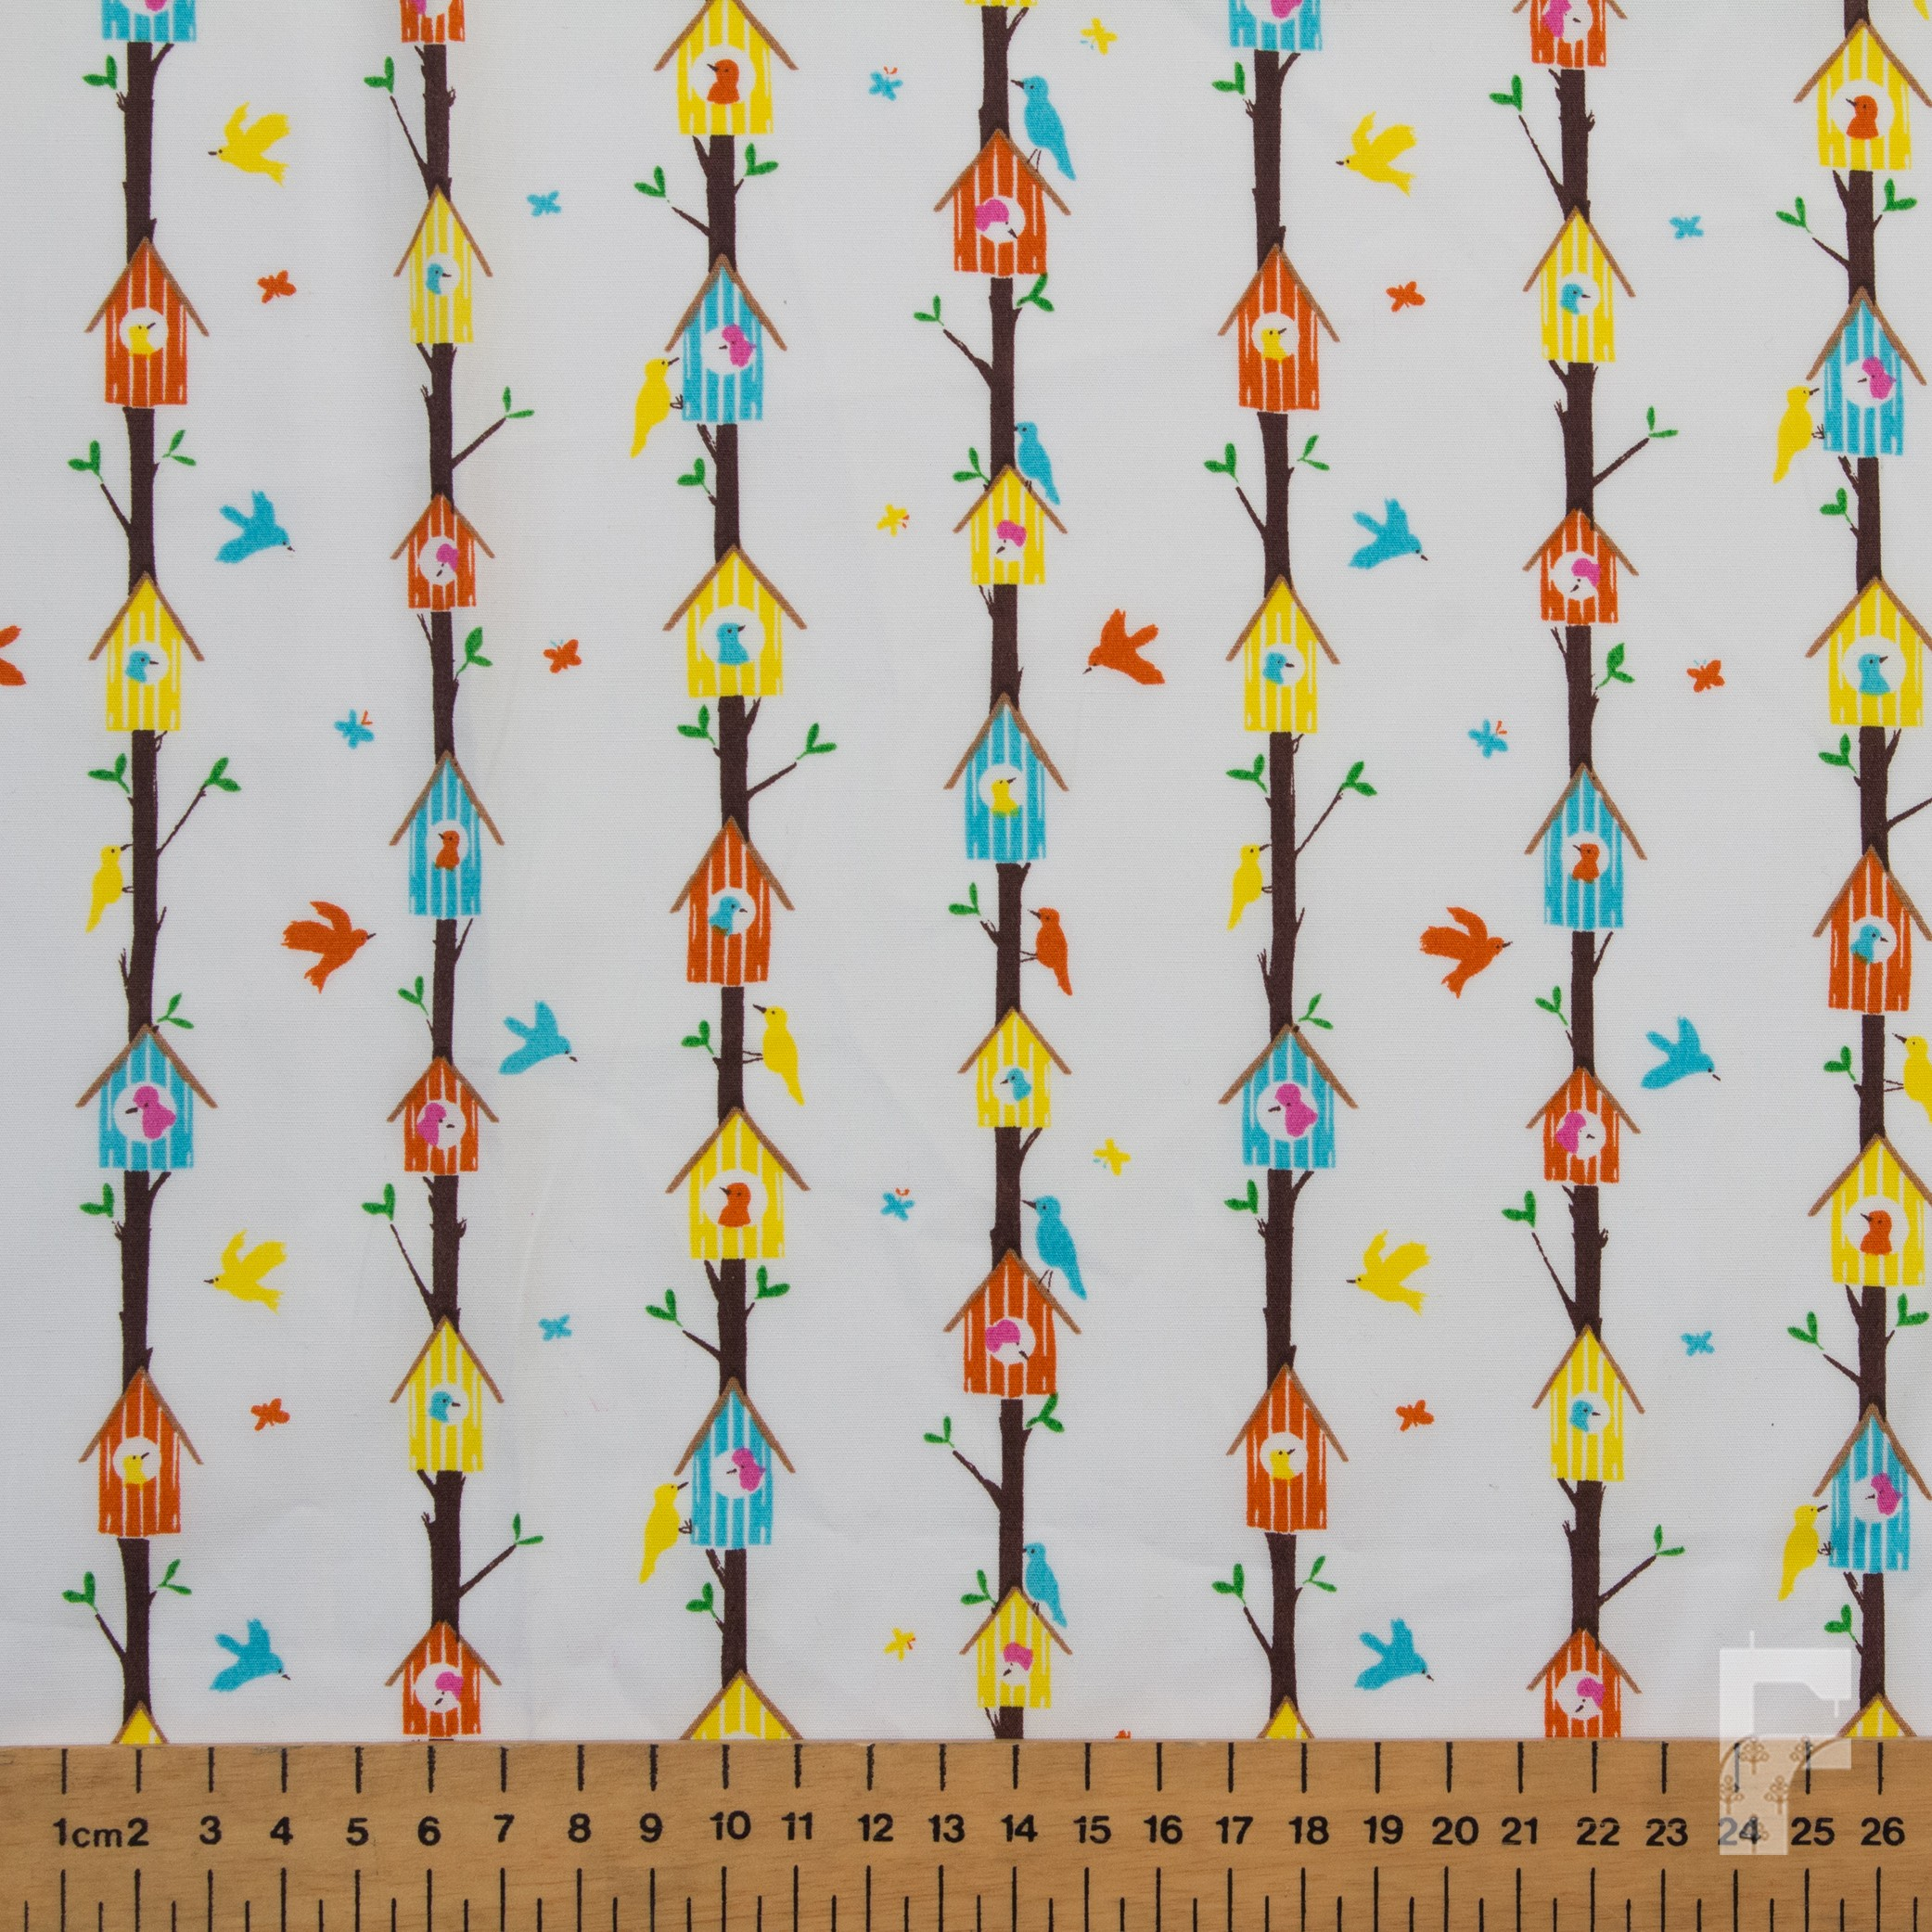 Cotton Poplin Print Fabric The Fabric Centre